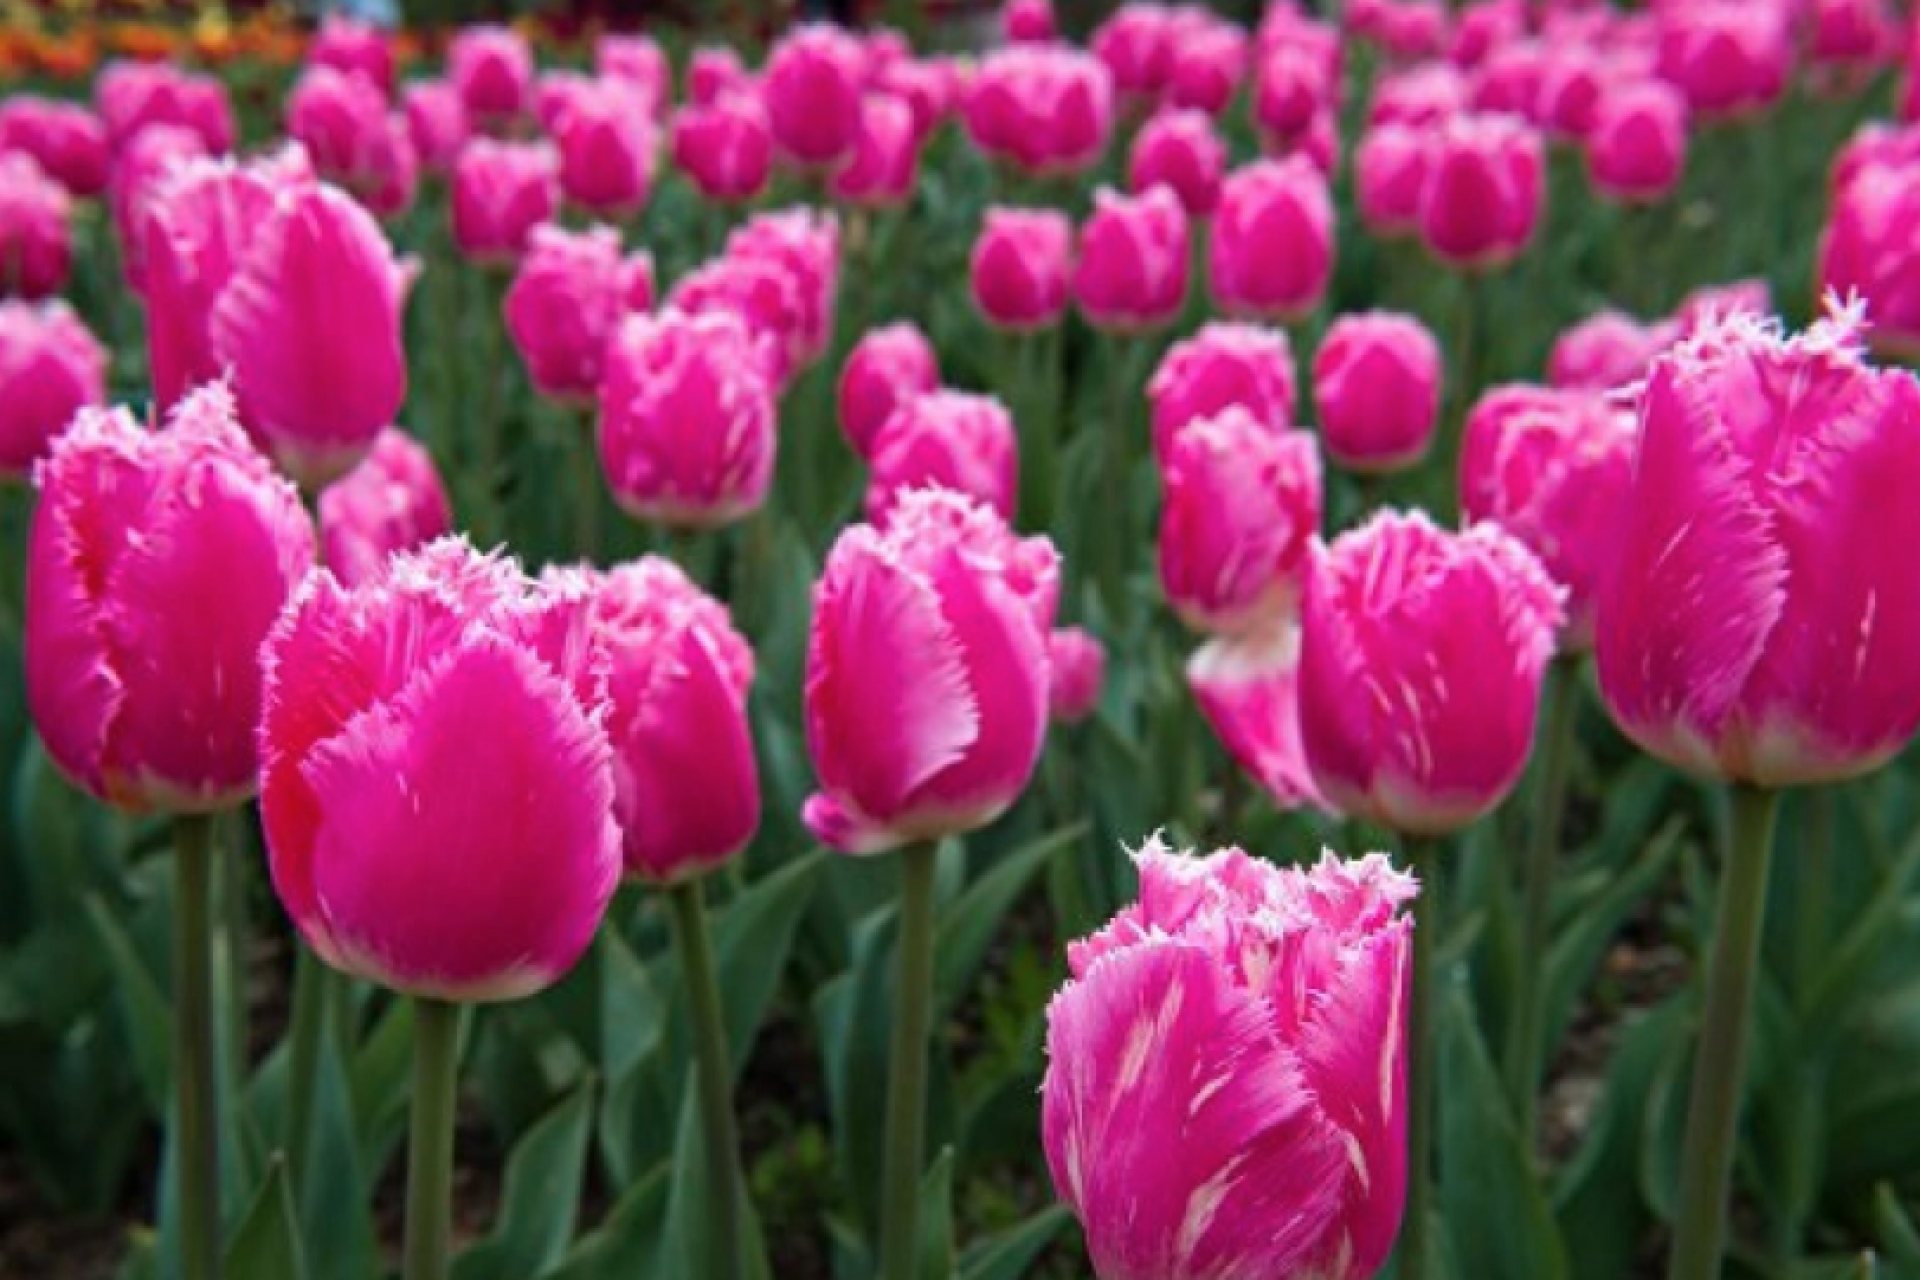 Crimean tulip exhibition in 2019 will exceed expectations